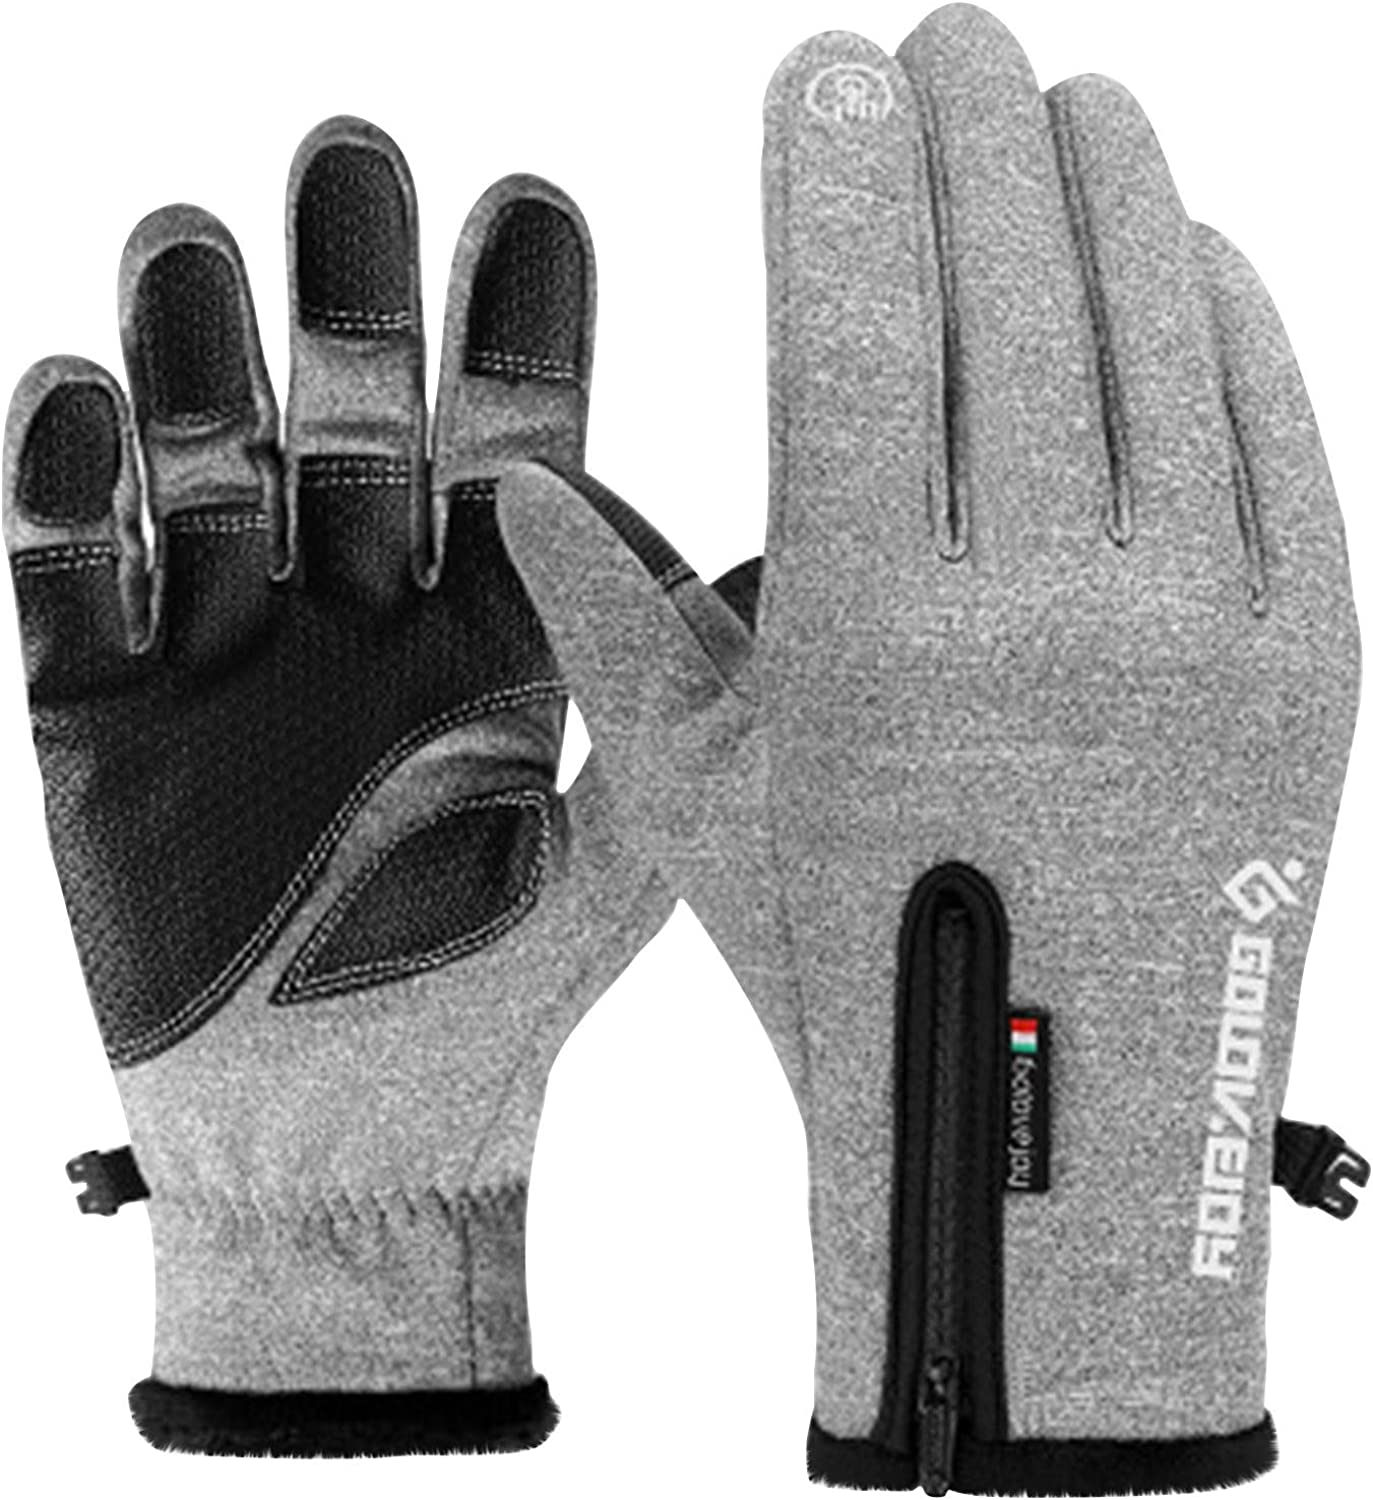 Winter Gloves Waterproof Cycling Sports Gloves Outdoor Winter Warm Snowboard Gloves Cold Weather Workout Training